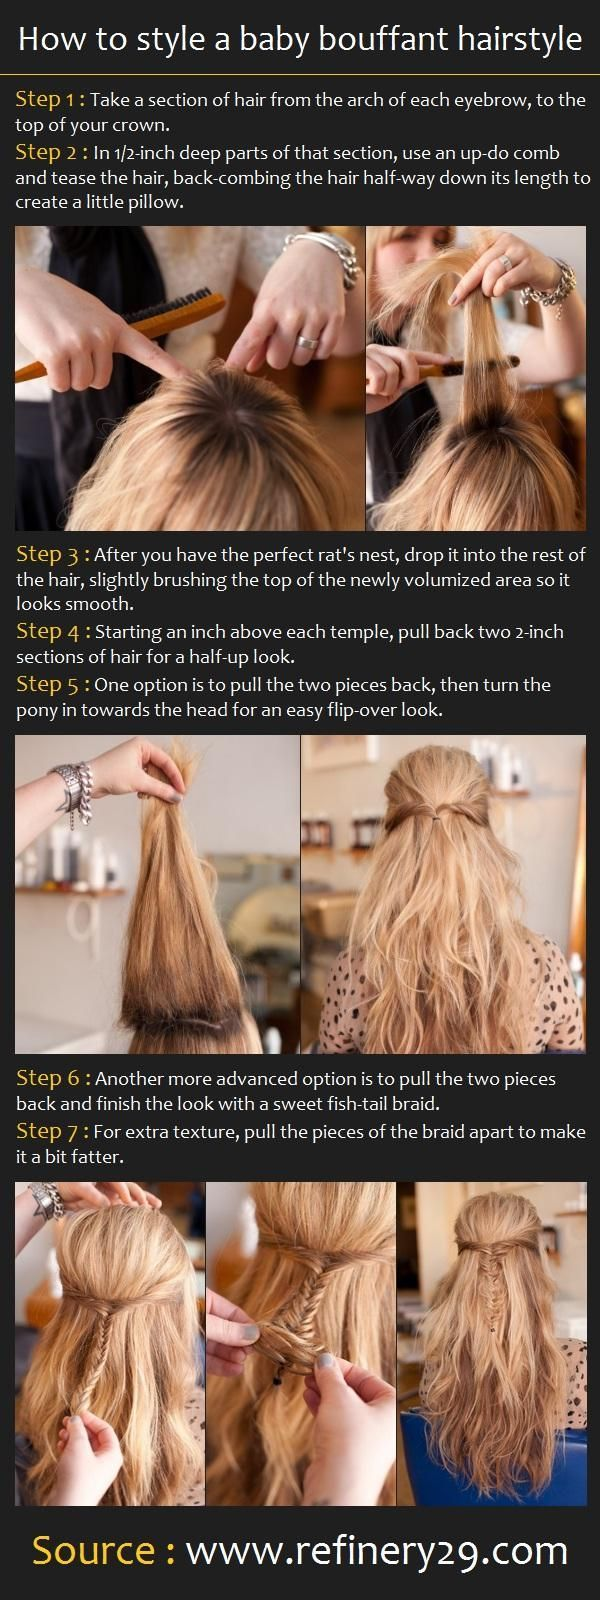 How to style a baby bouffant hairstyle hair cuts pinterest